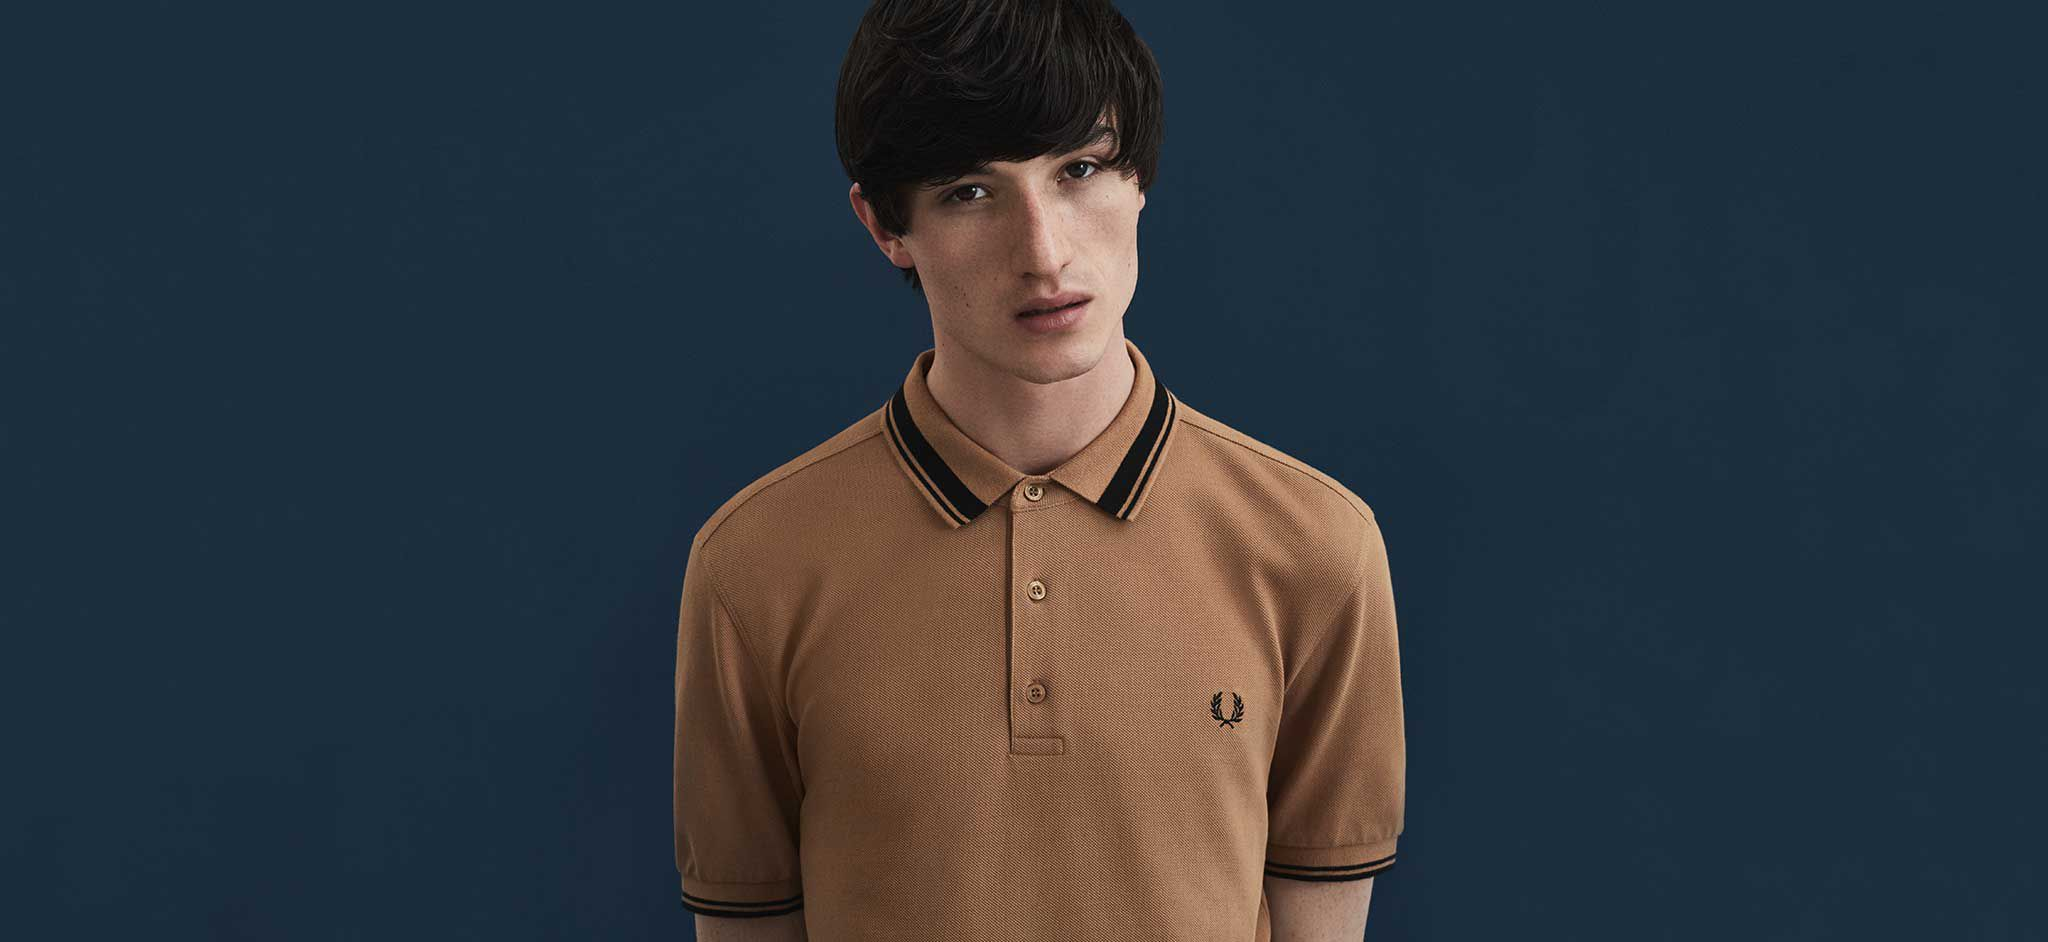 Fred Perry Unionmoda Outlet